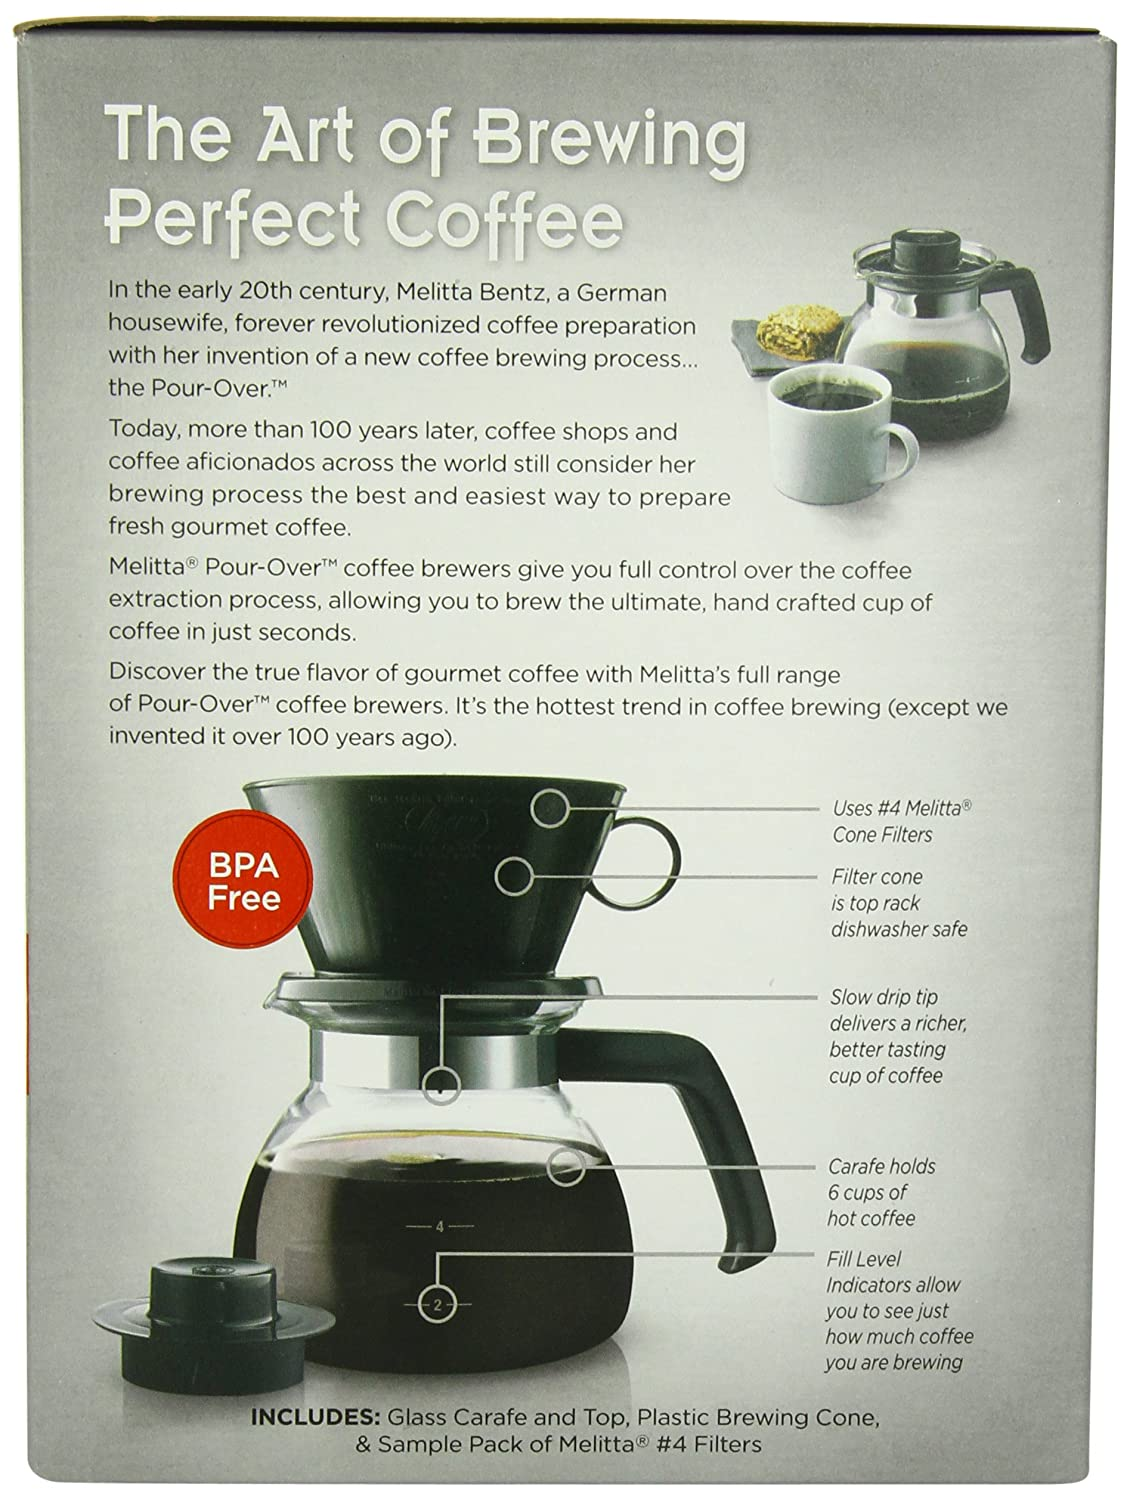 Melitta Coffee Maker, 6 Cup Pour-Over Brewer with Glass Carafe, 1-Count , New, F 55437640442 eBay